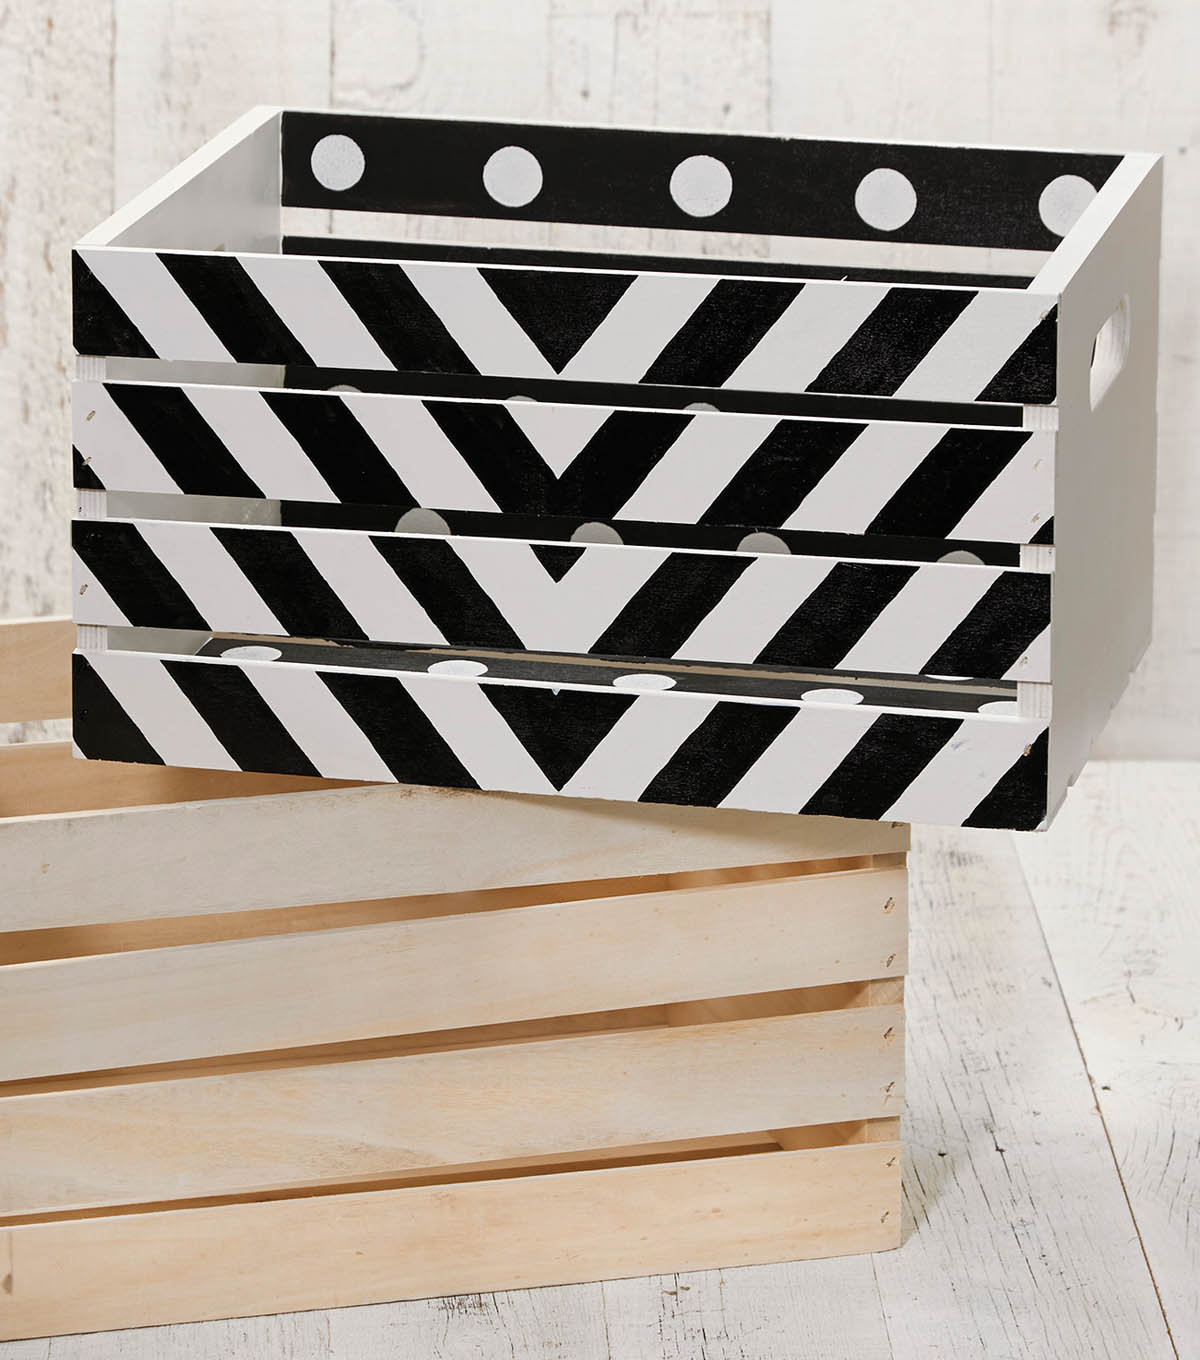 Black and White Crate